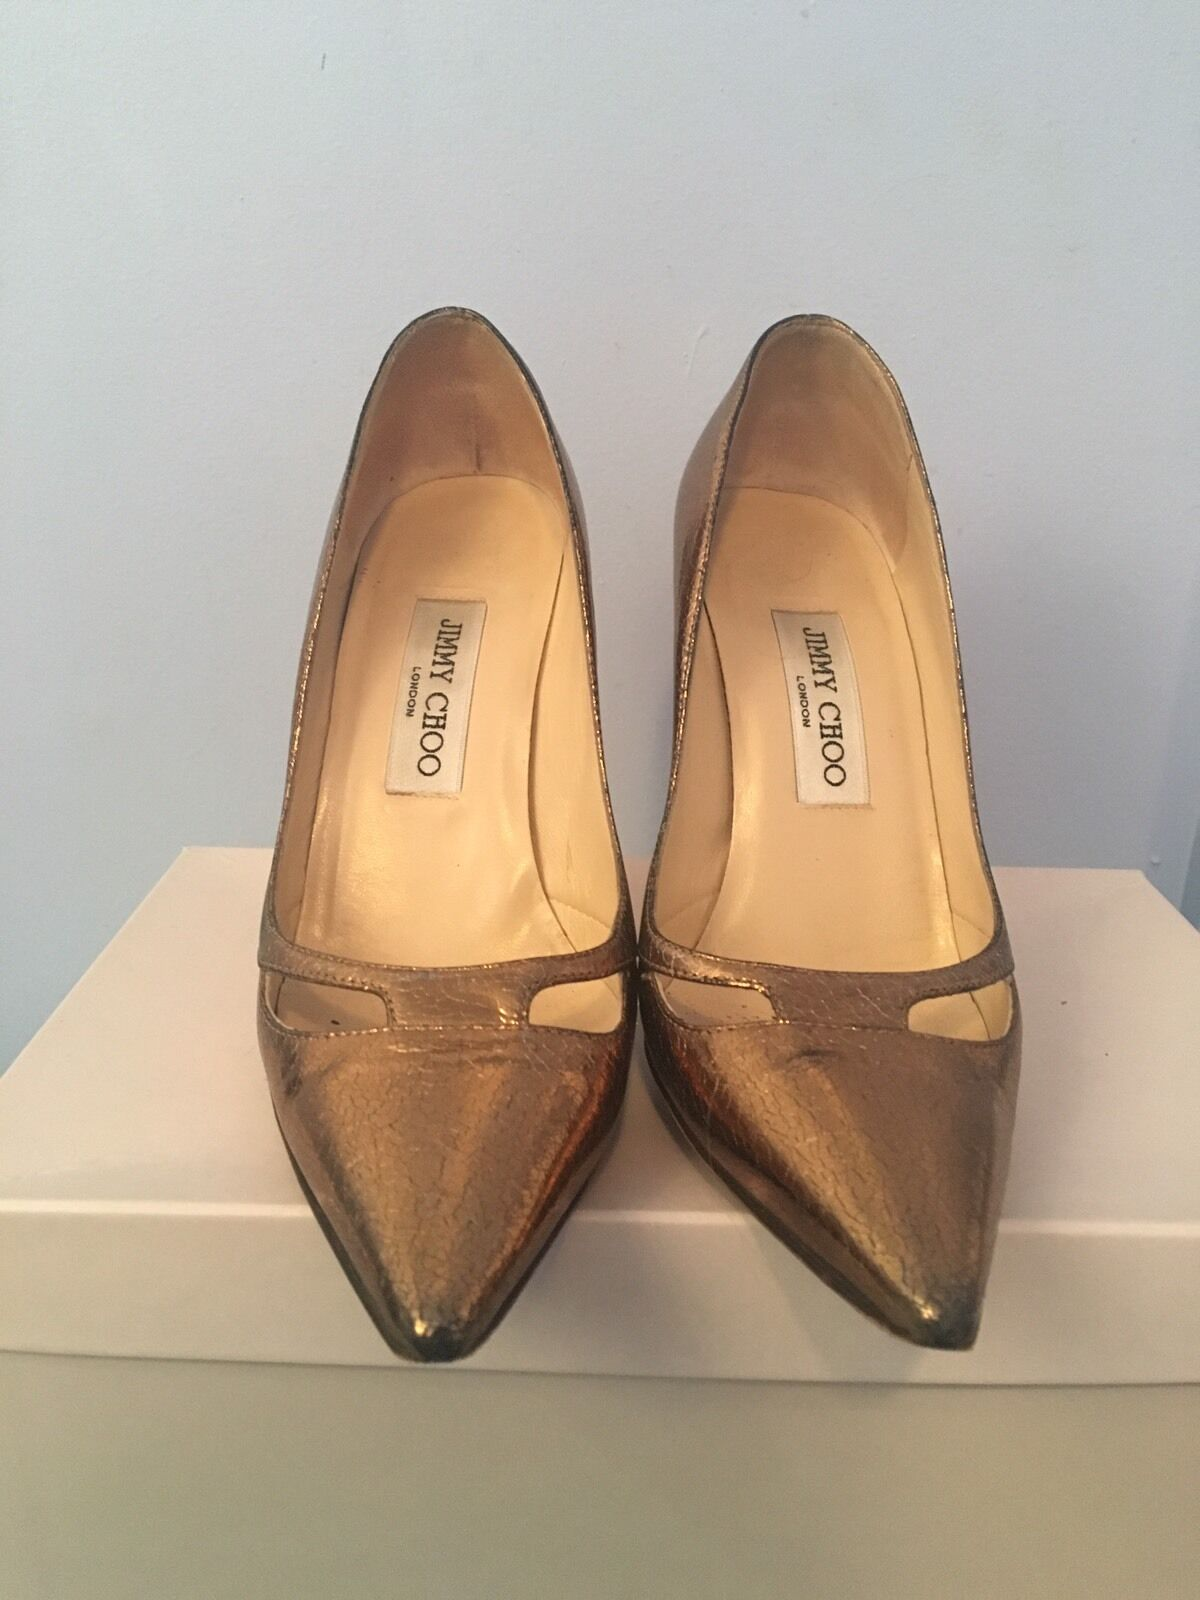 Jimmy Choo Gold Pointed Toe Pumps